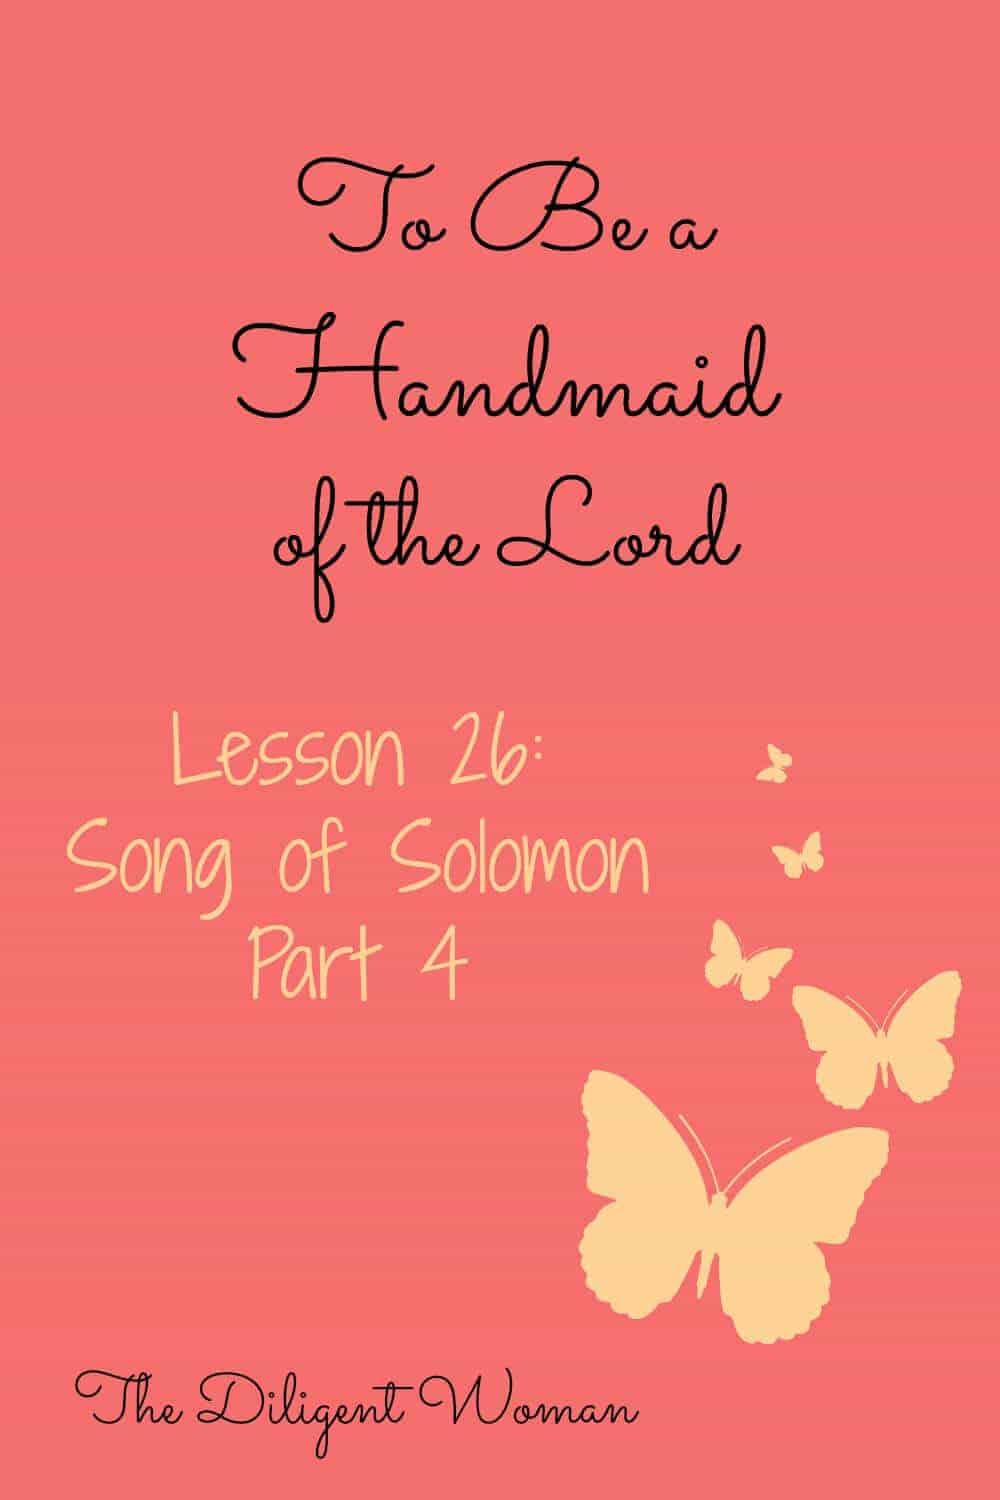 Song of Solomon part 4